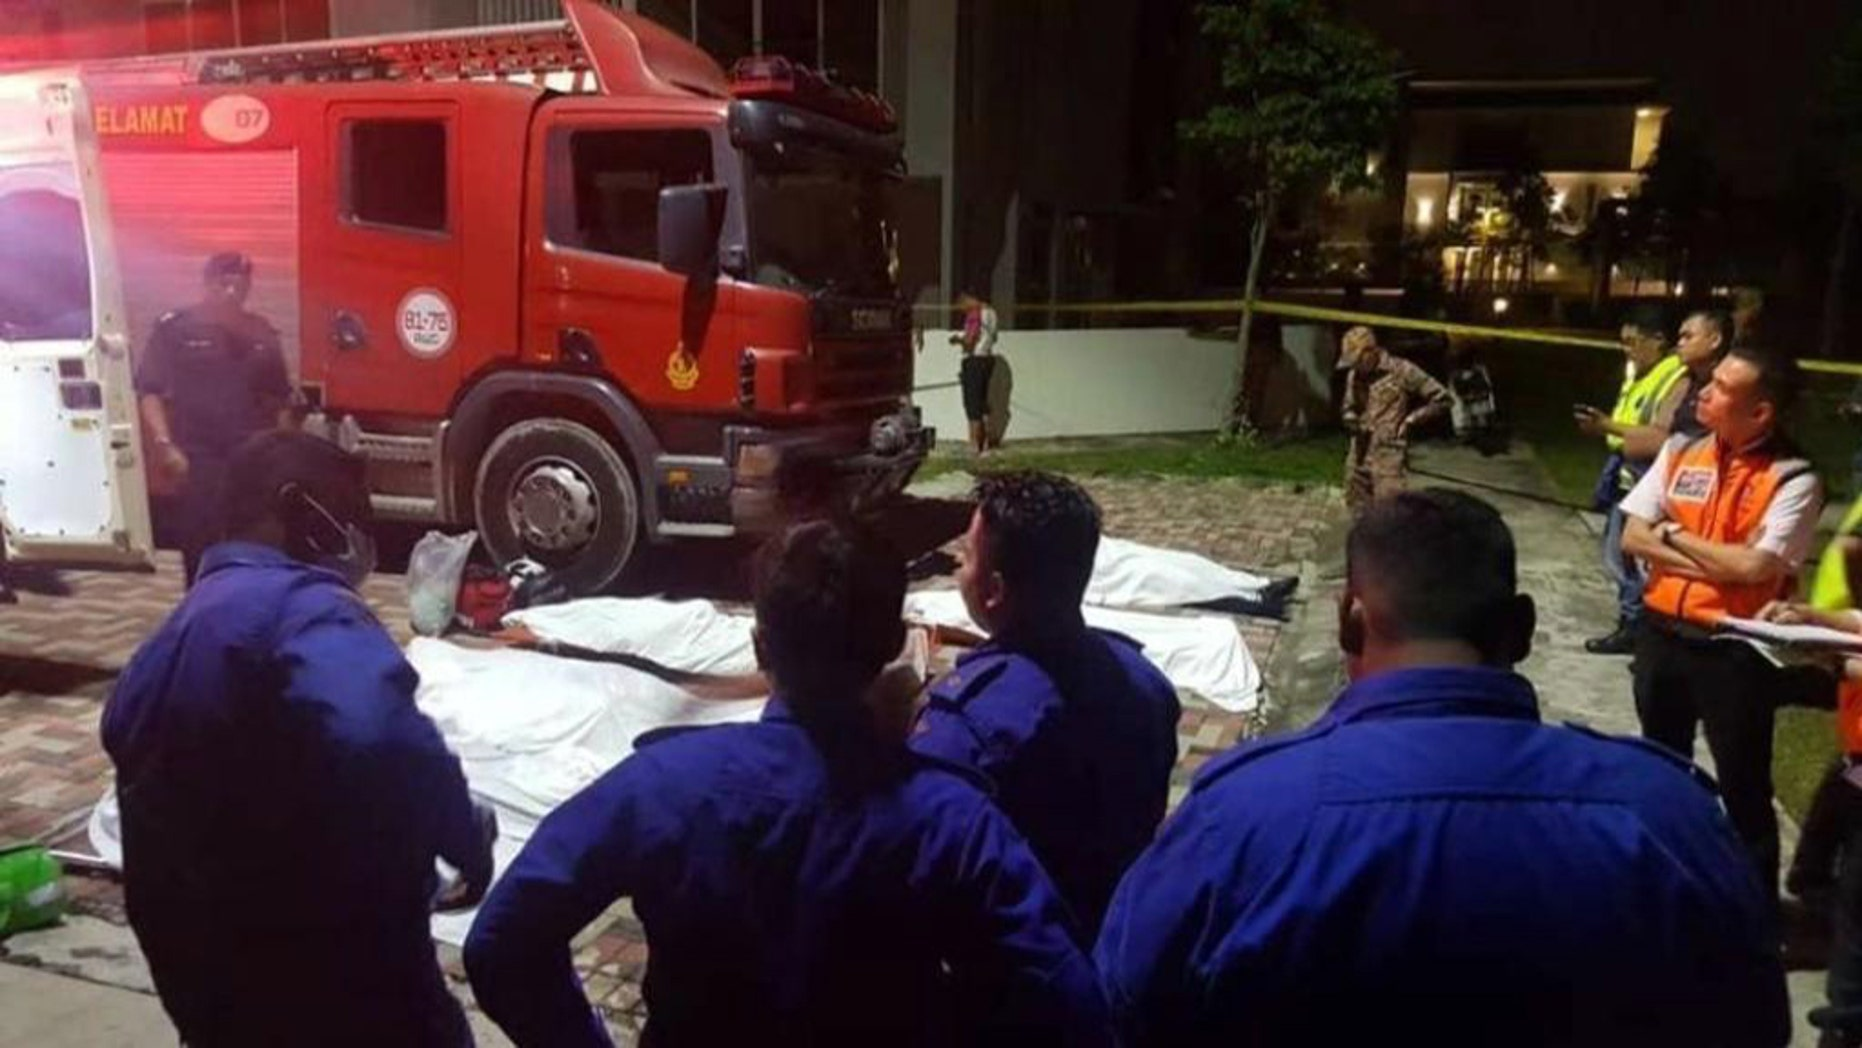 Six rescuers drowned in Malaysia Wednesday while trying to rescue a teen who fell into an abandoned mining pool.